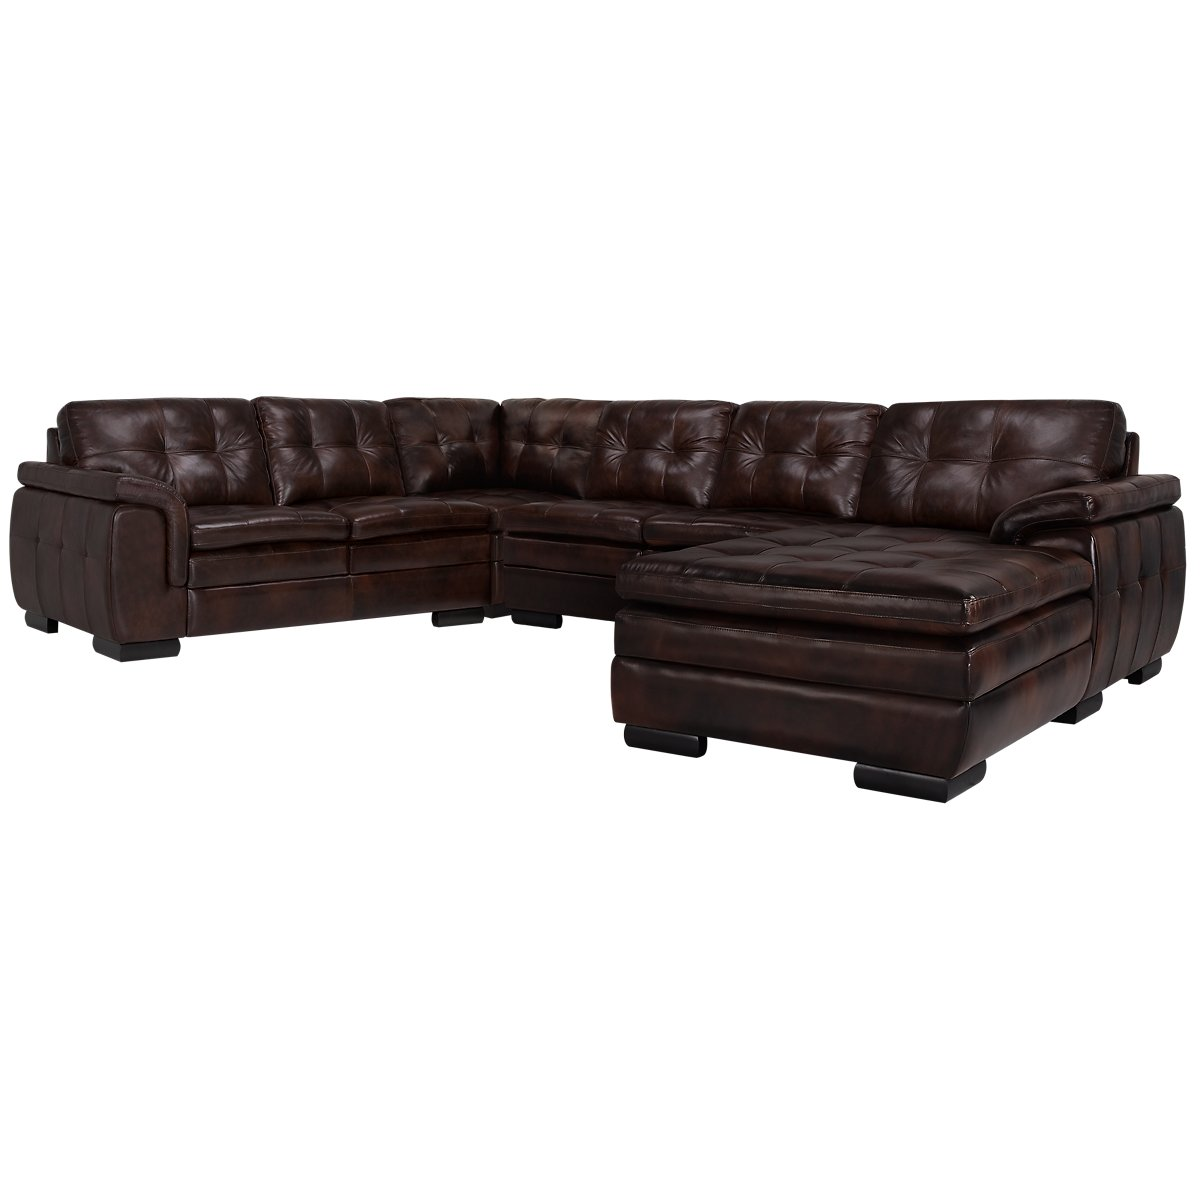 City furniture trevor dark brown leather small right for Brown leather sectional with chaise